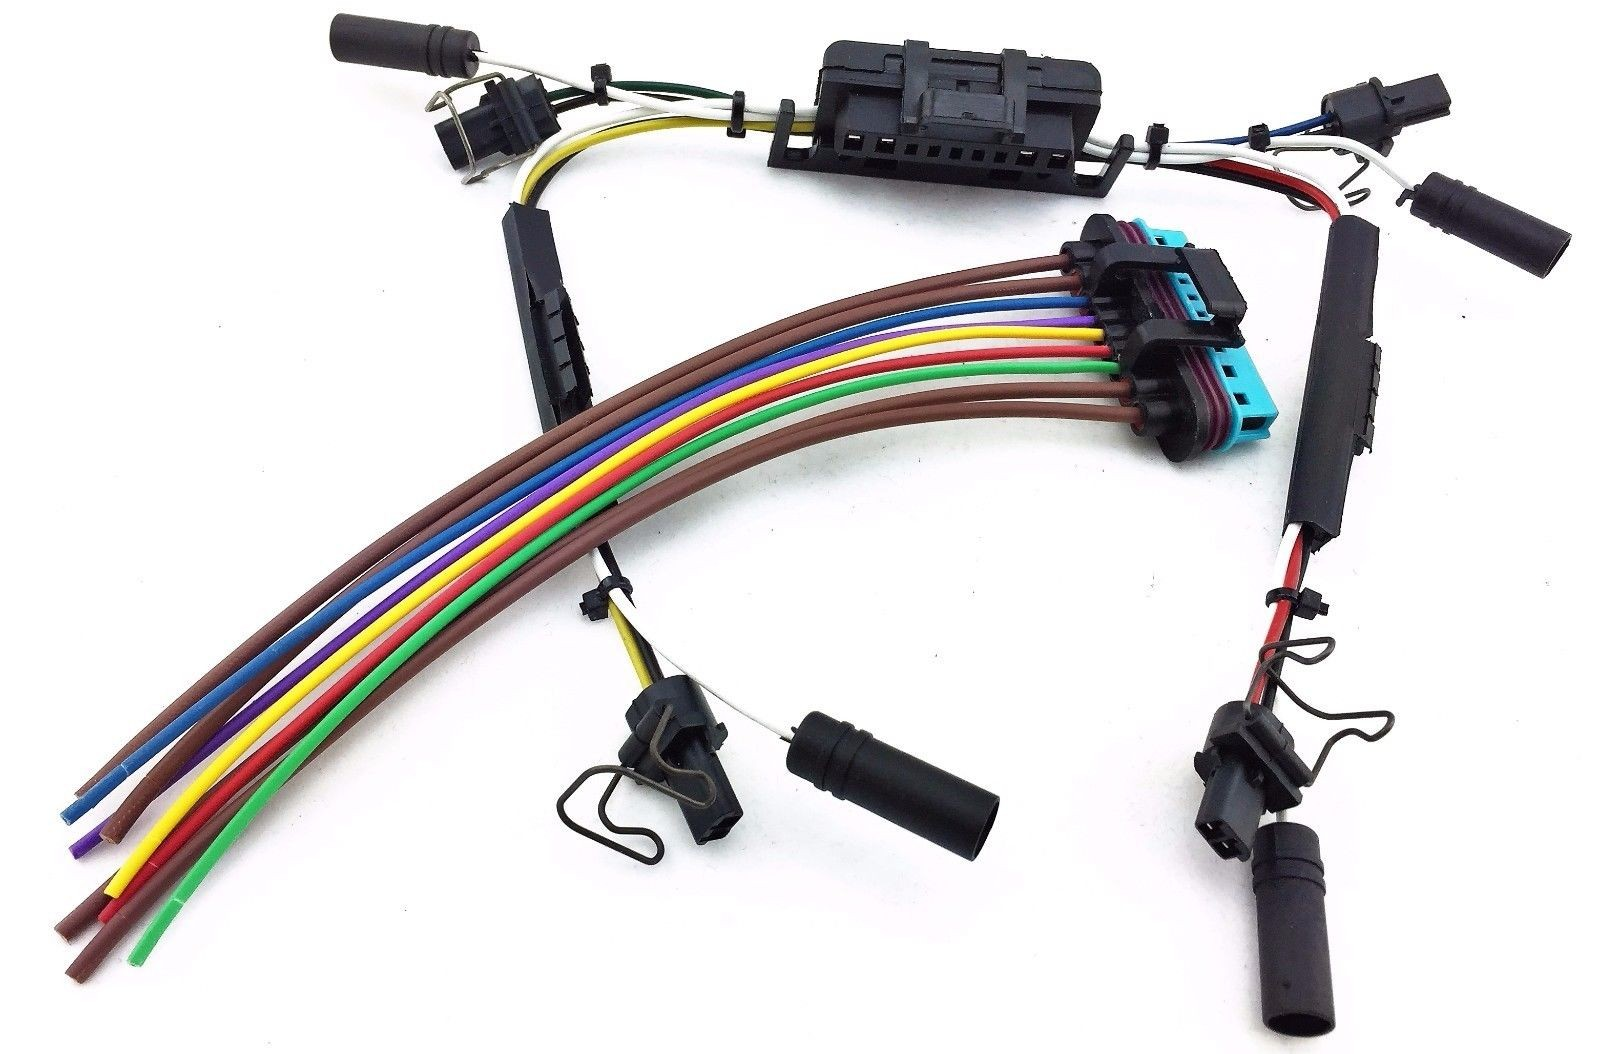 Ford F 250 Wiring Harness Repair Kits Archive Of Automotive Auto 97 03 350 F250 F350 Glow Plugs Injector Wire Rh Napolperformance